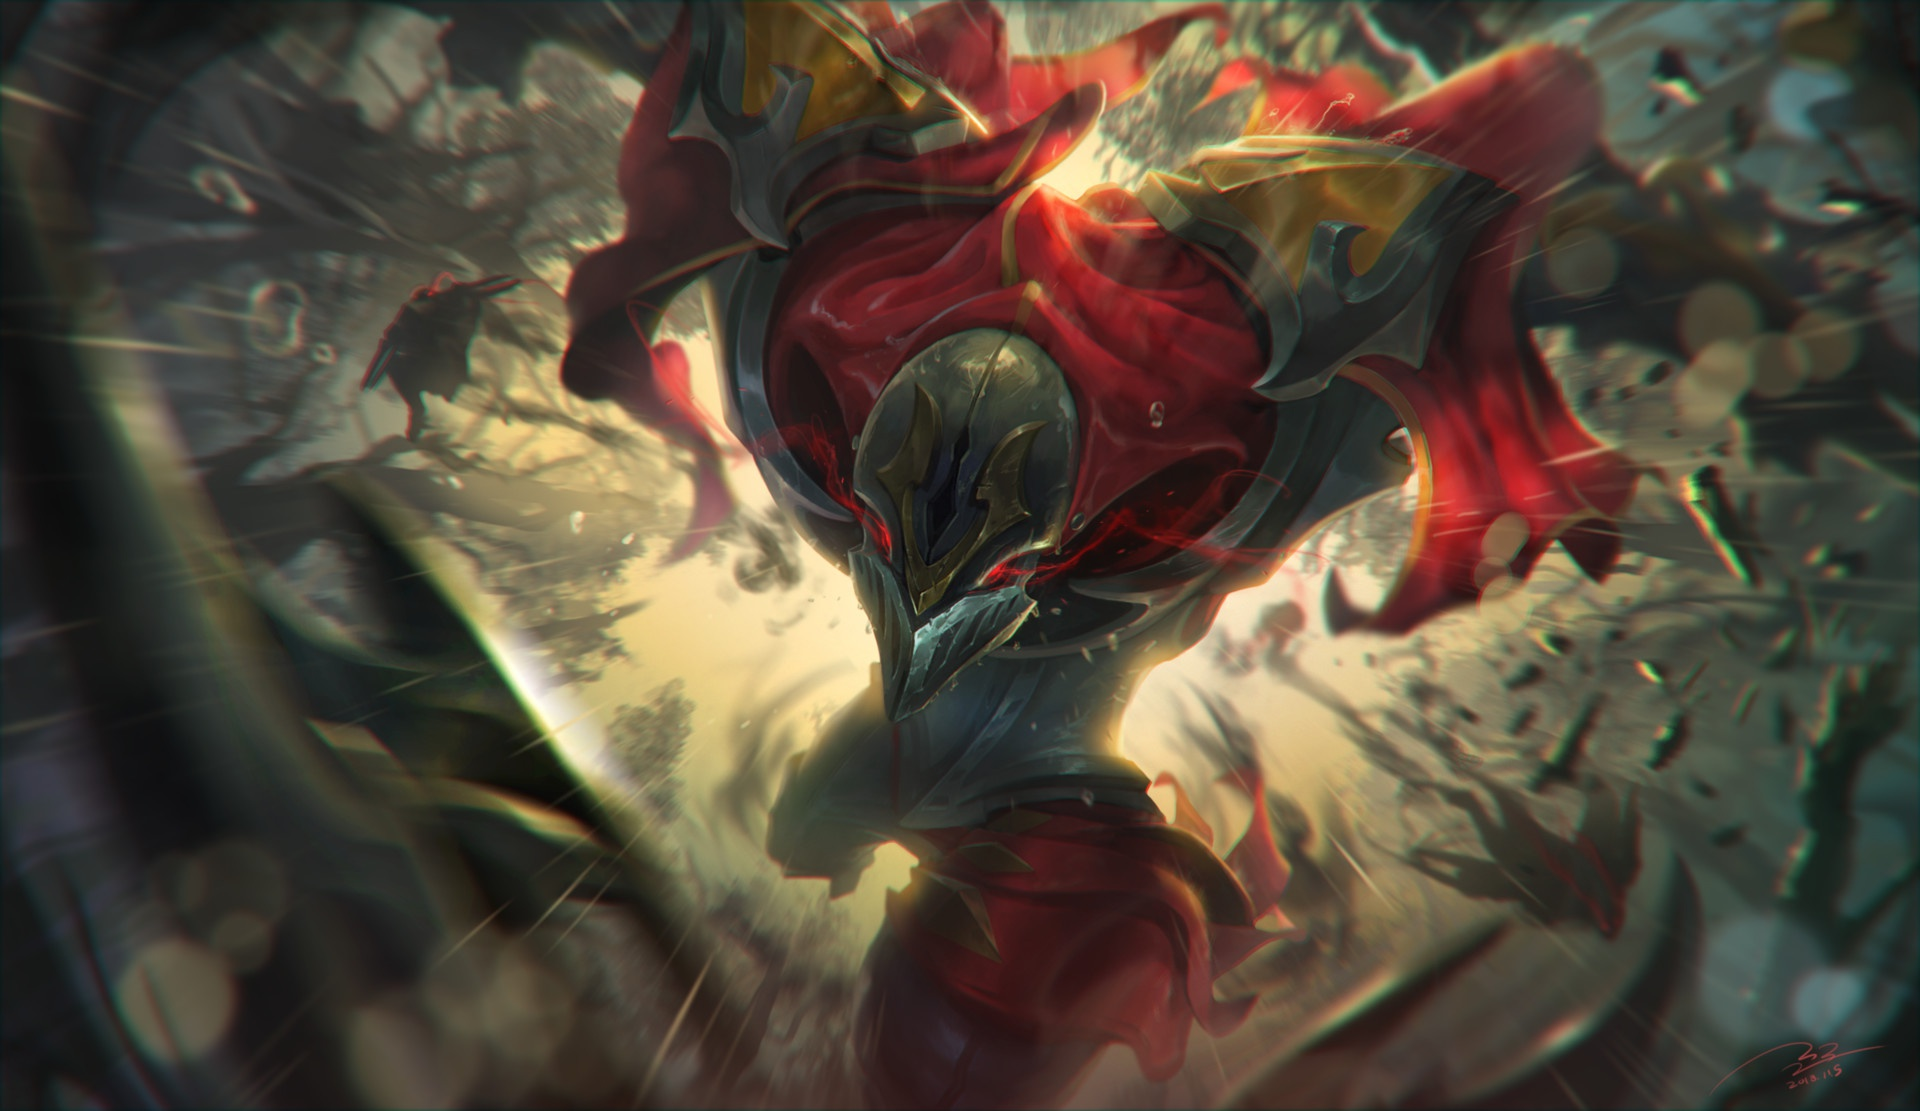 Wallpaper Of League Of Legends Zed Video Game Art Background